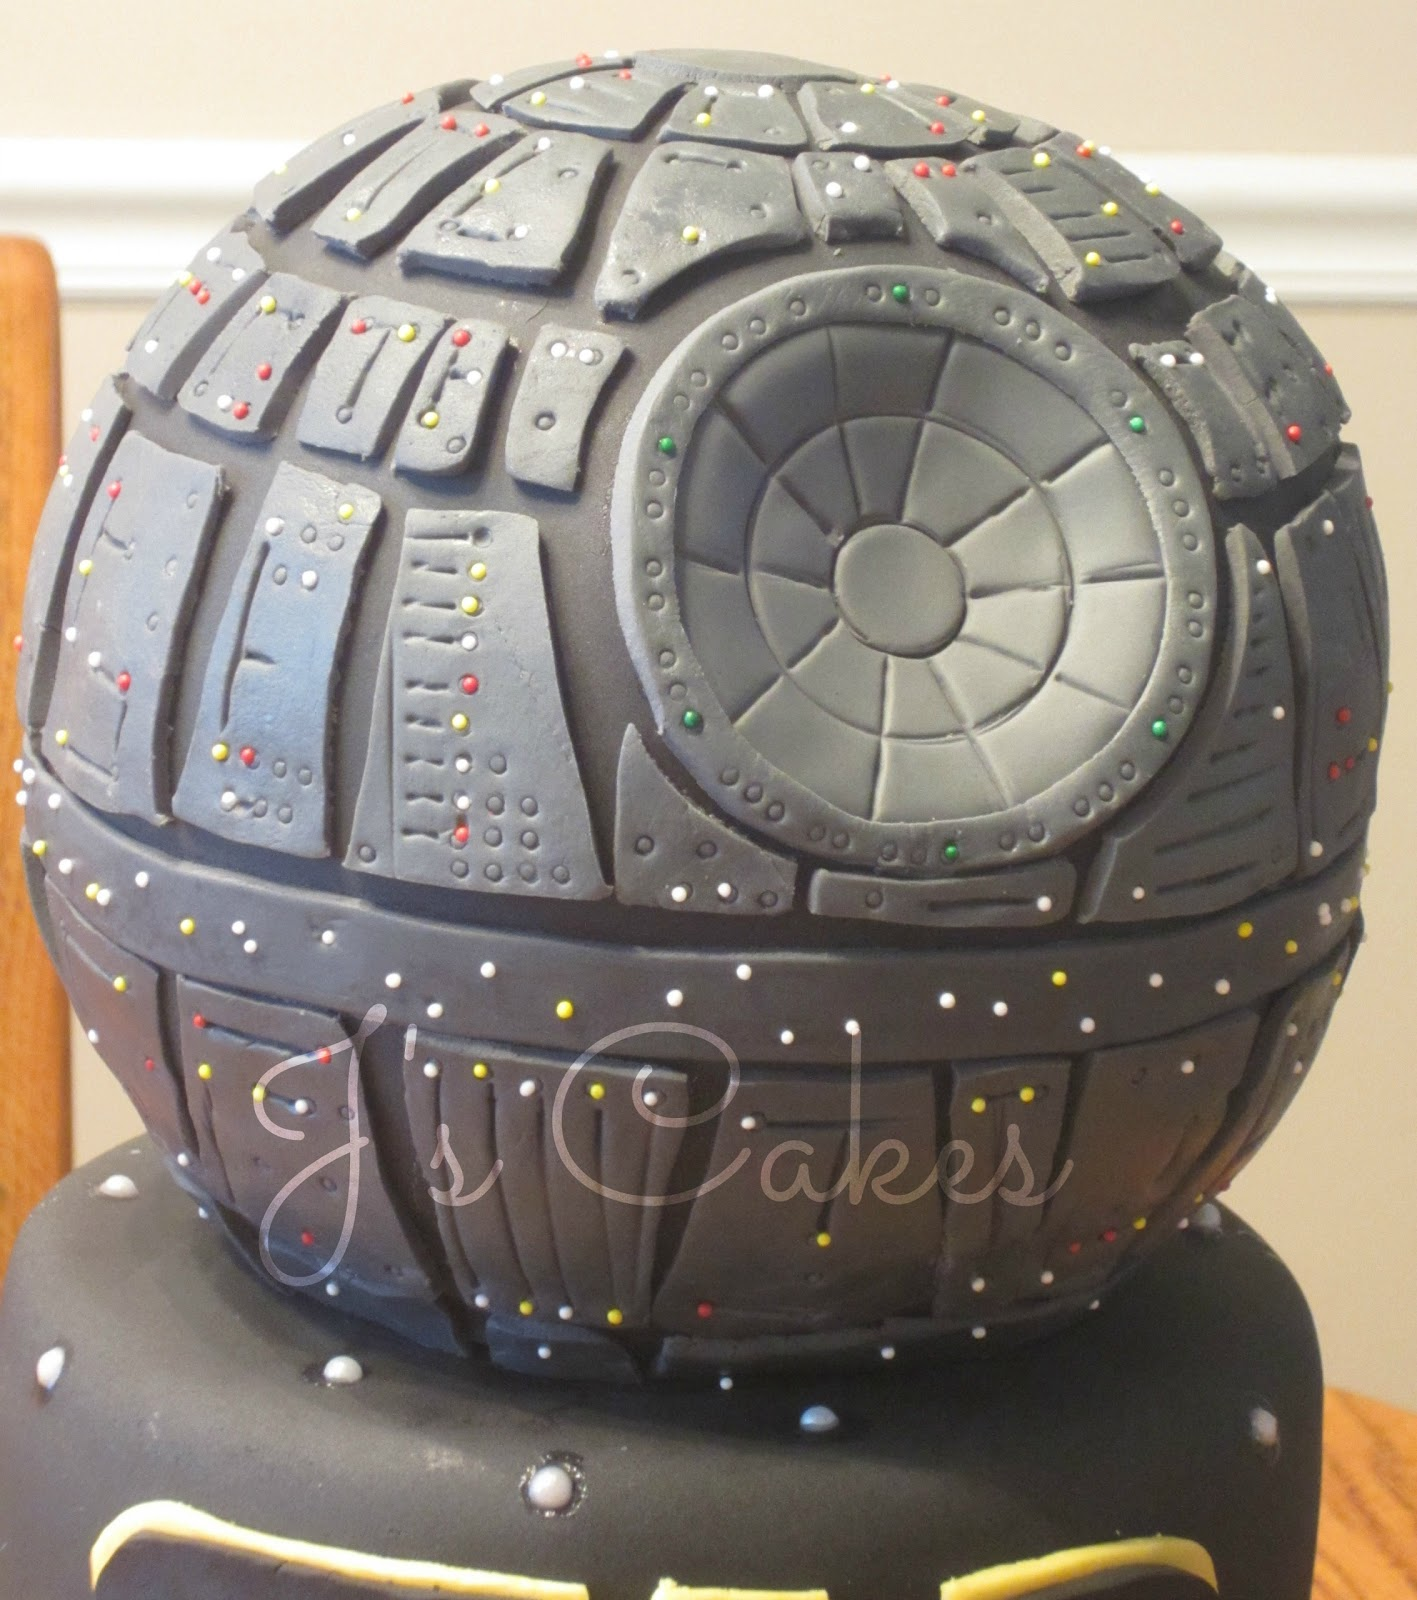 Star wars day death star cake ultimatefishing info